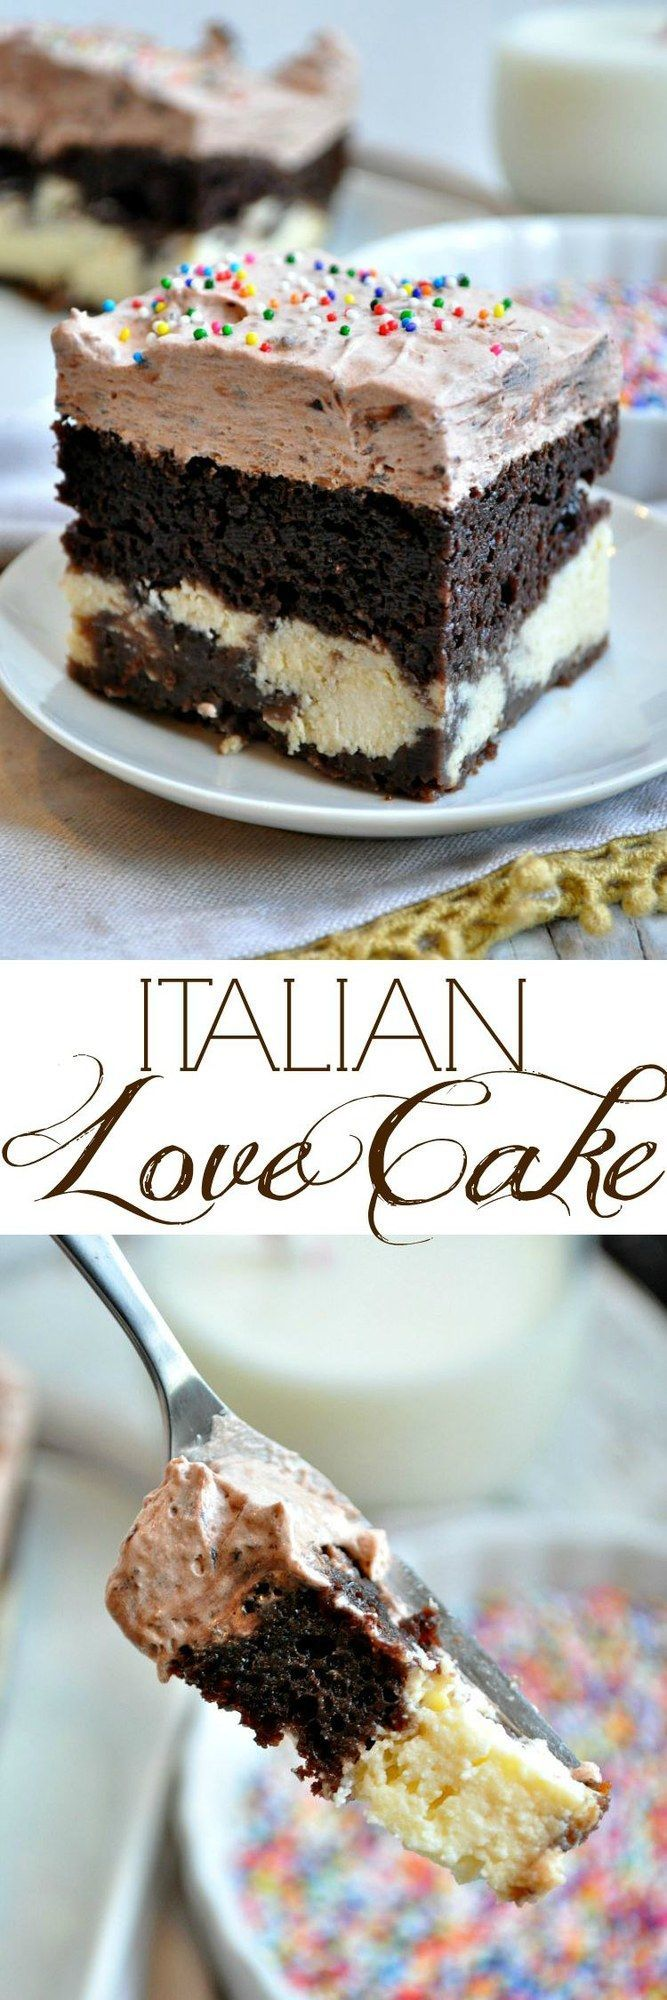 With help from a cake mix, even your kids can make this Easy Chocolate Italian Love Cake! It\\\'s a simple yet impressive dessert that everyone loves!